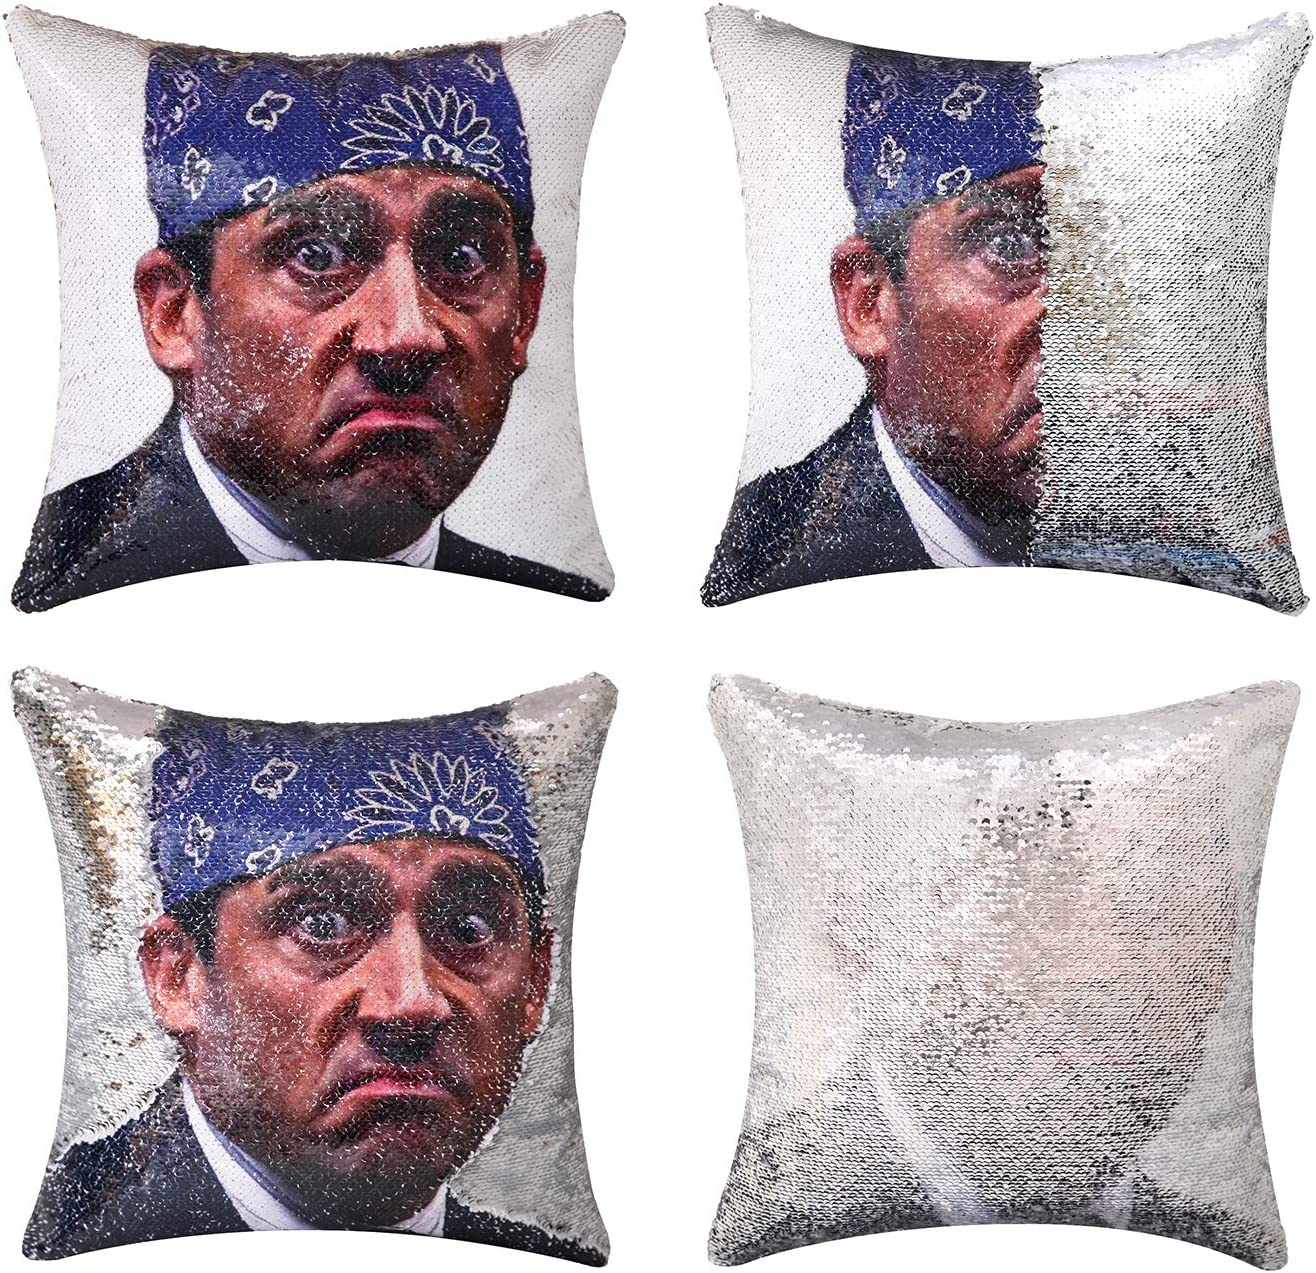 cygnus The Office Michael Scott Quote Humor Sequin Reversible Pillowcover Mermaid Flip Pillow Case That Color Change Decor Cushion 16x16 inches (Silver Sequin)